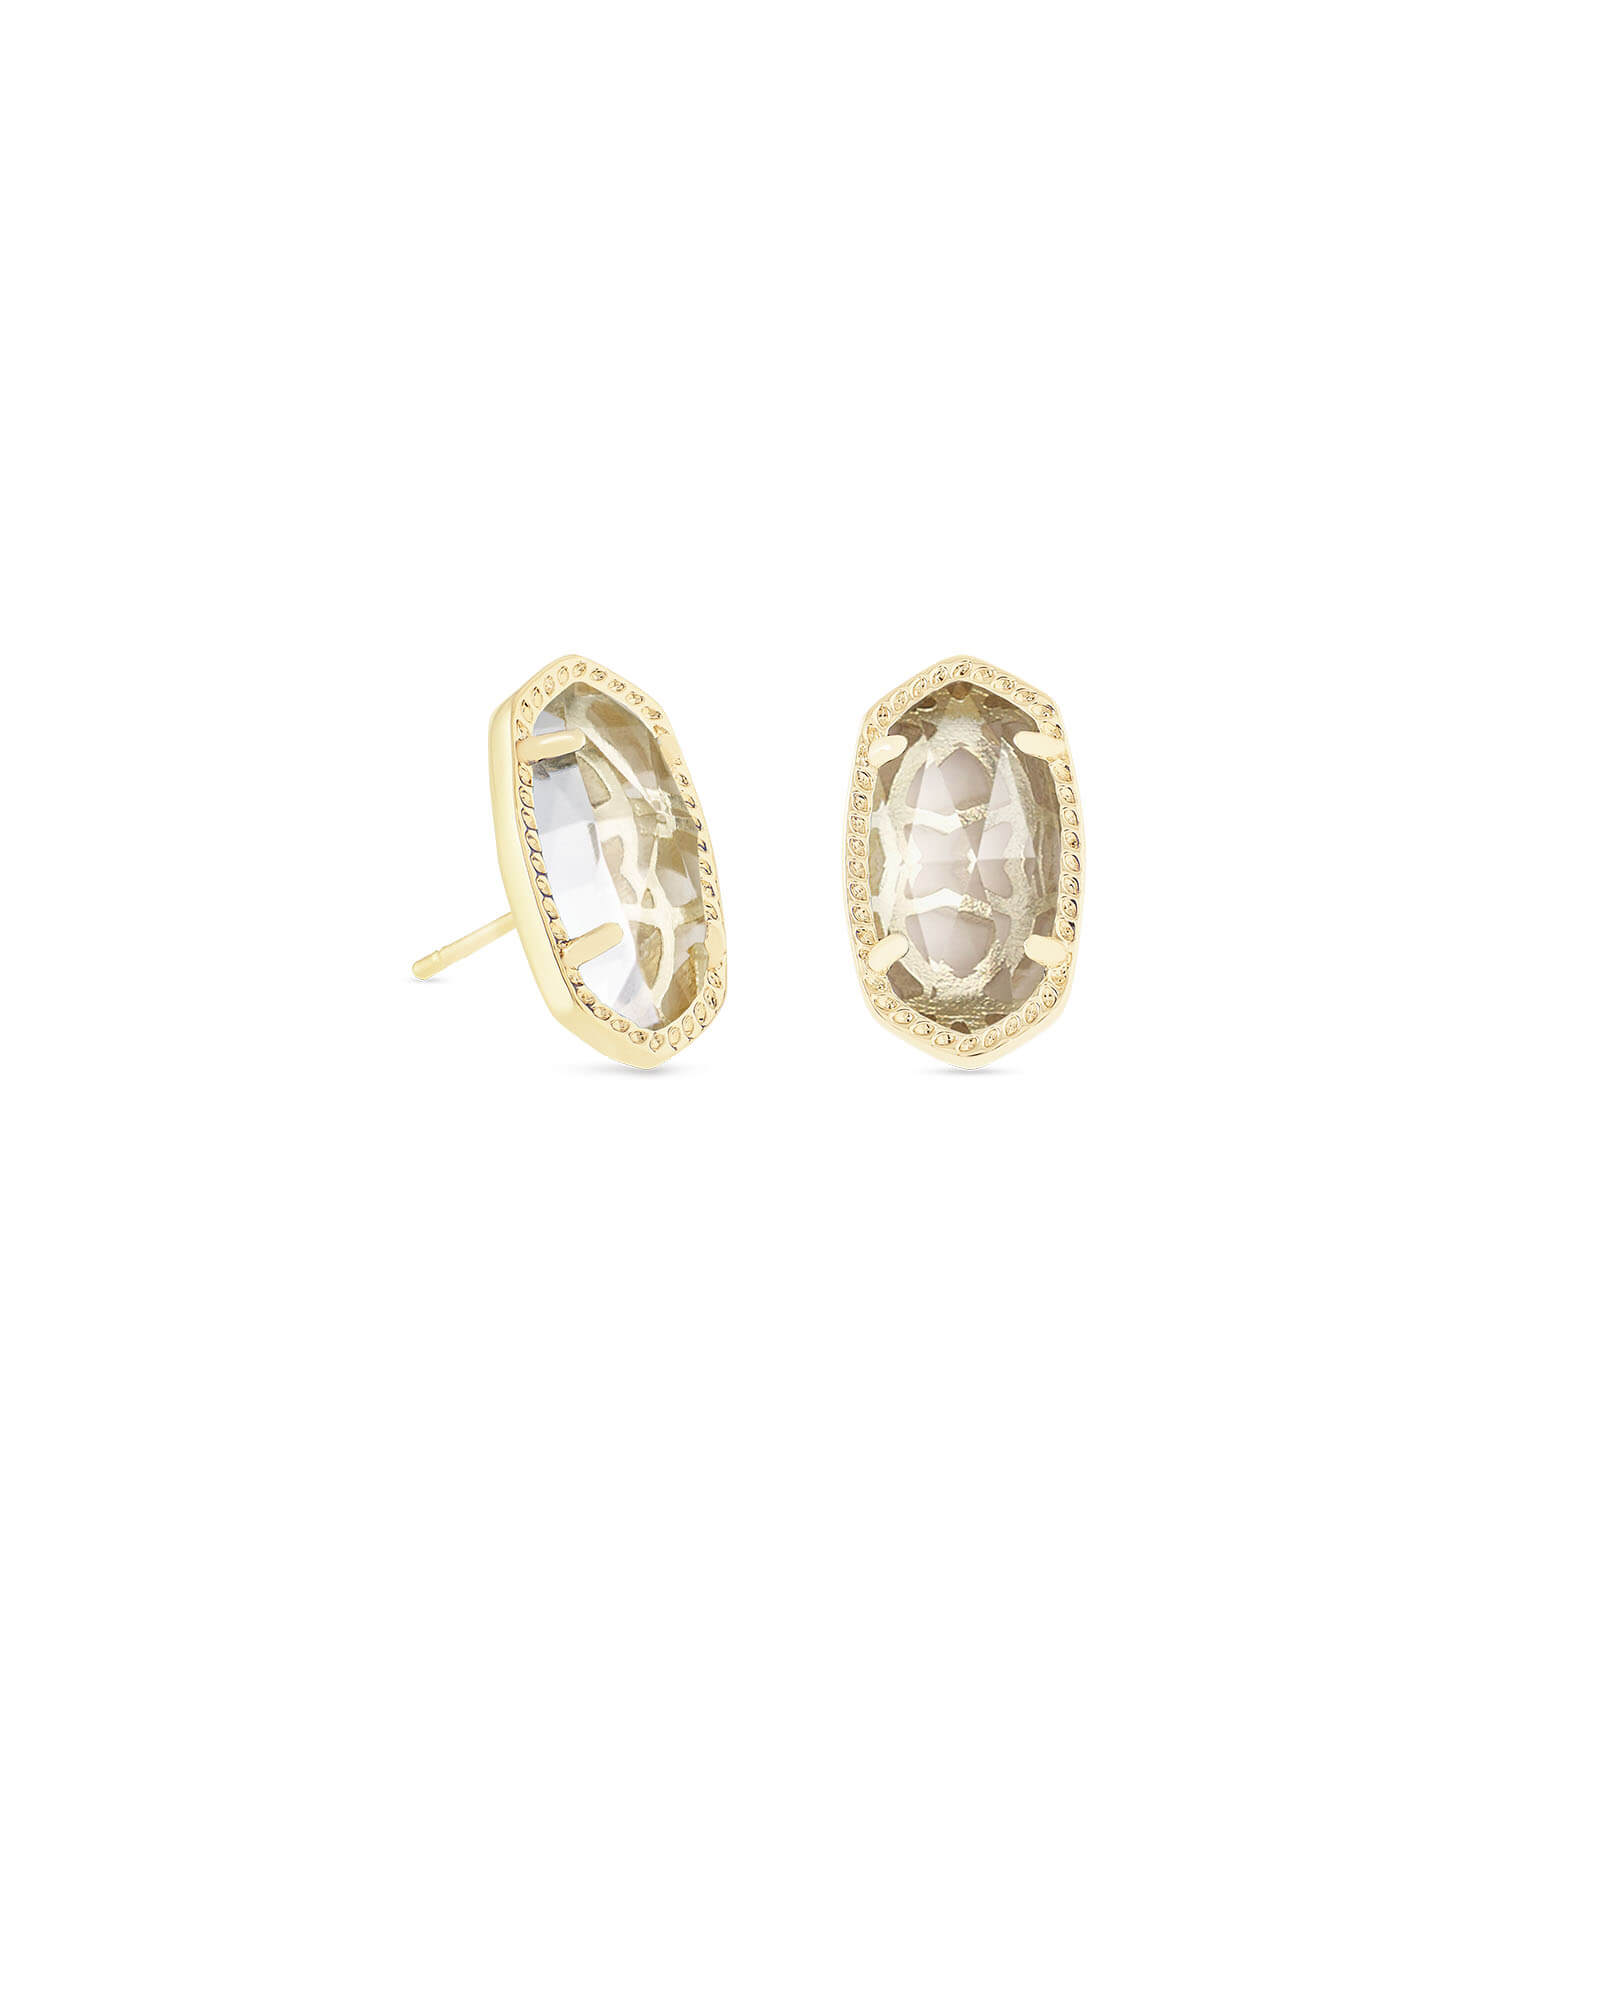 Ellie Gold Stud Earrings in Clear Crystal